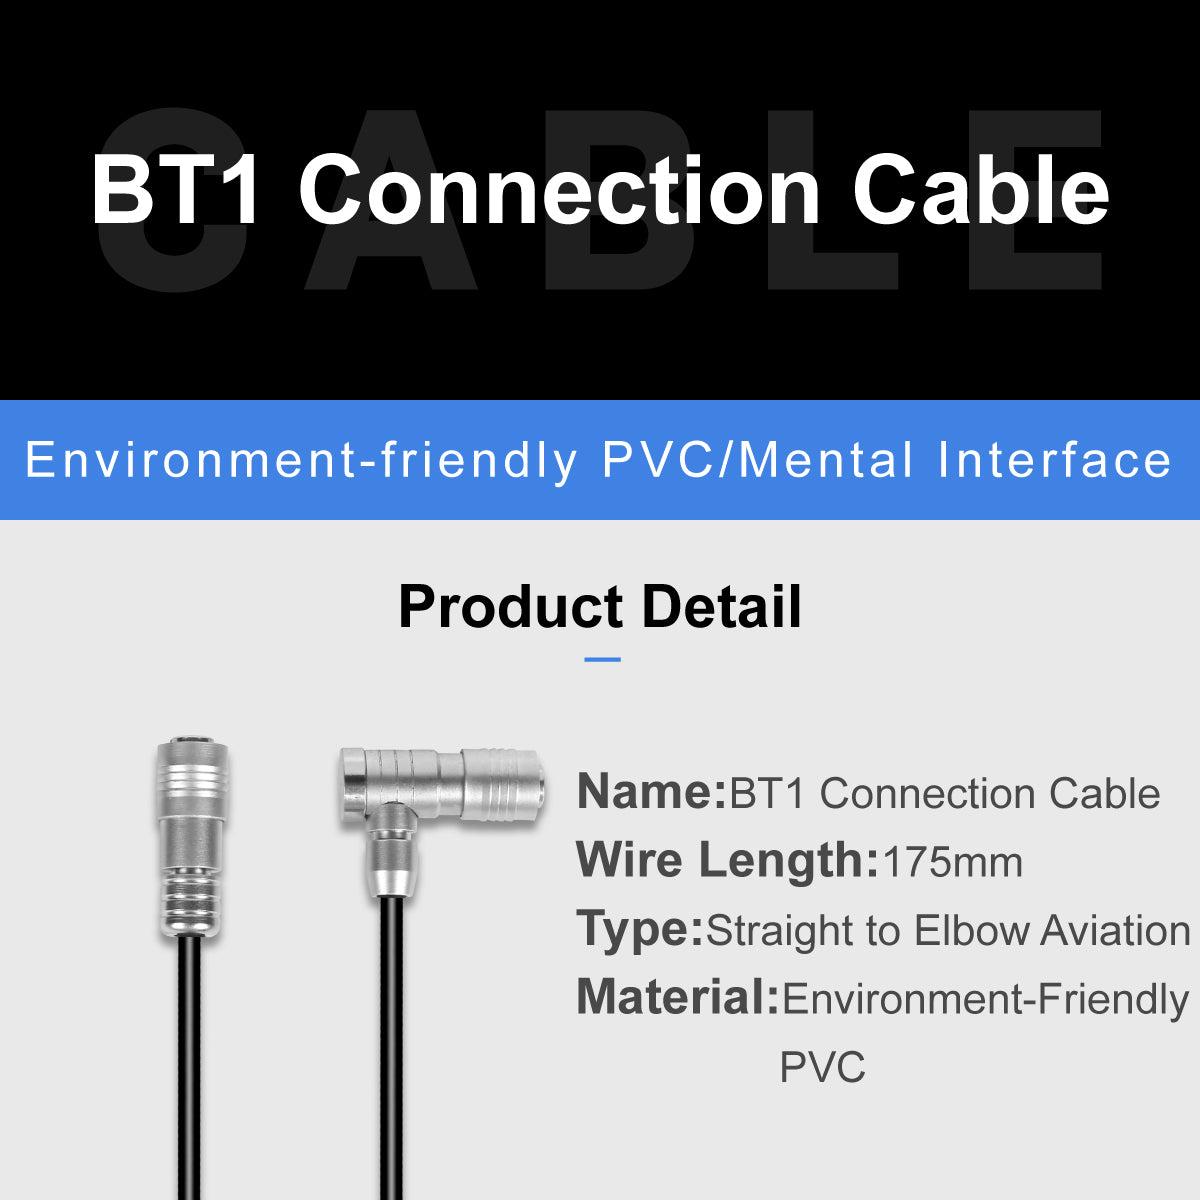 BT1 Connect cable